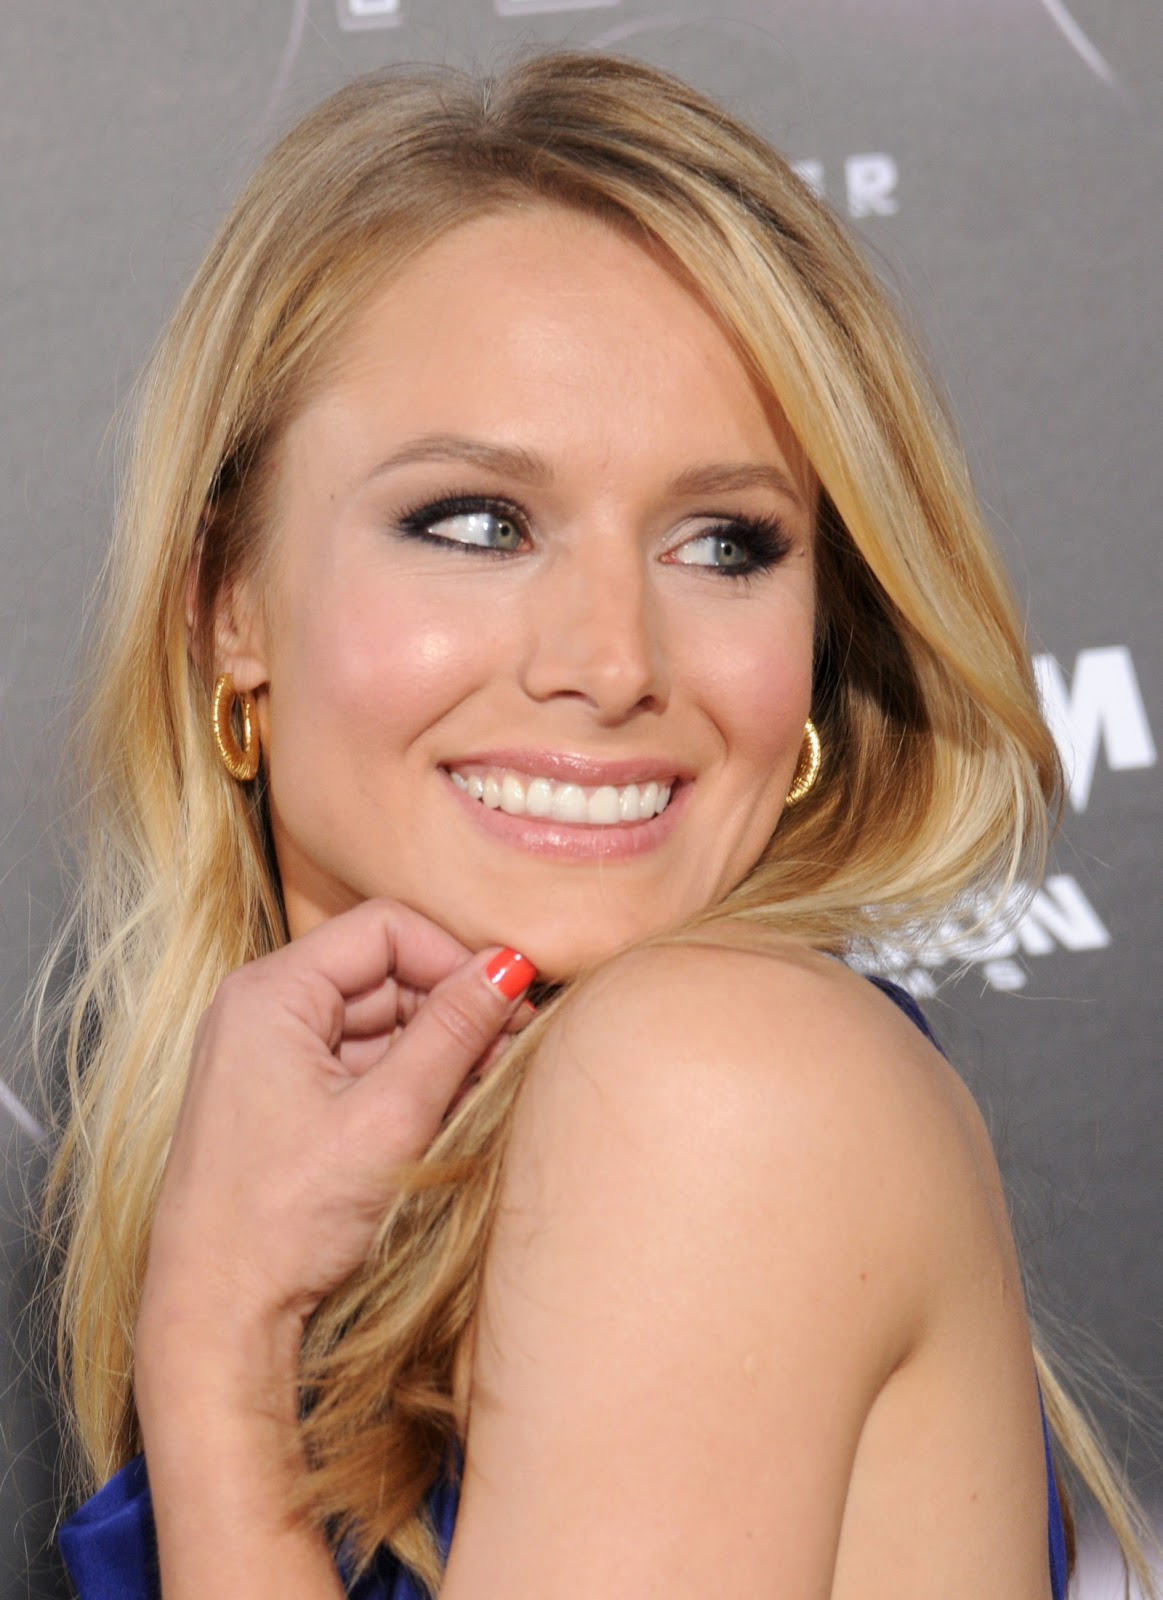 Nude Pictures Of Kristen Bell